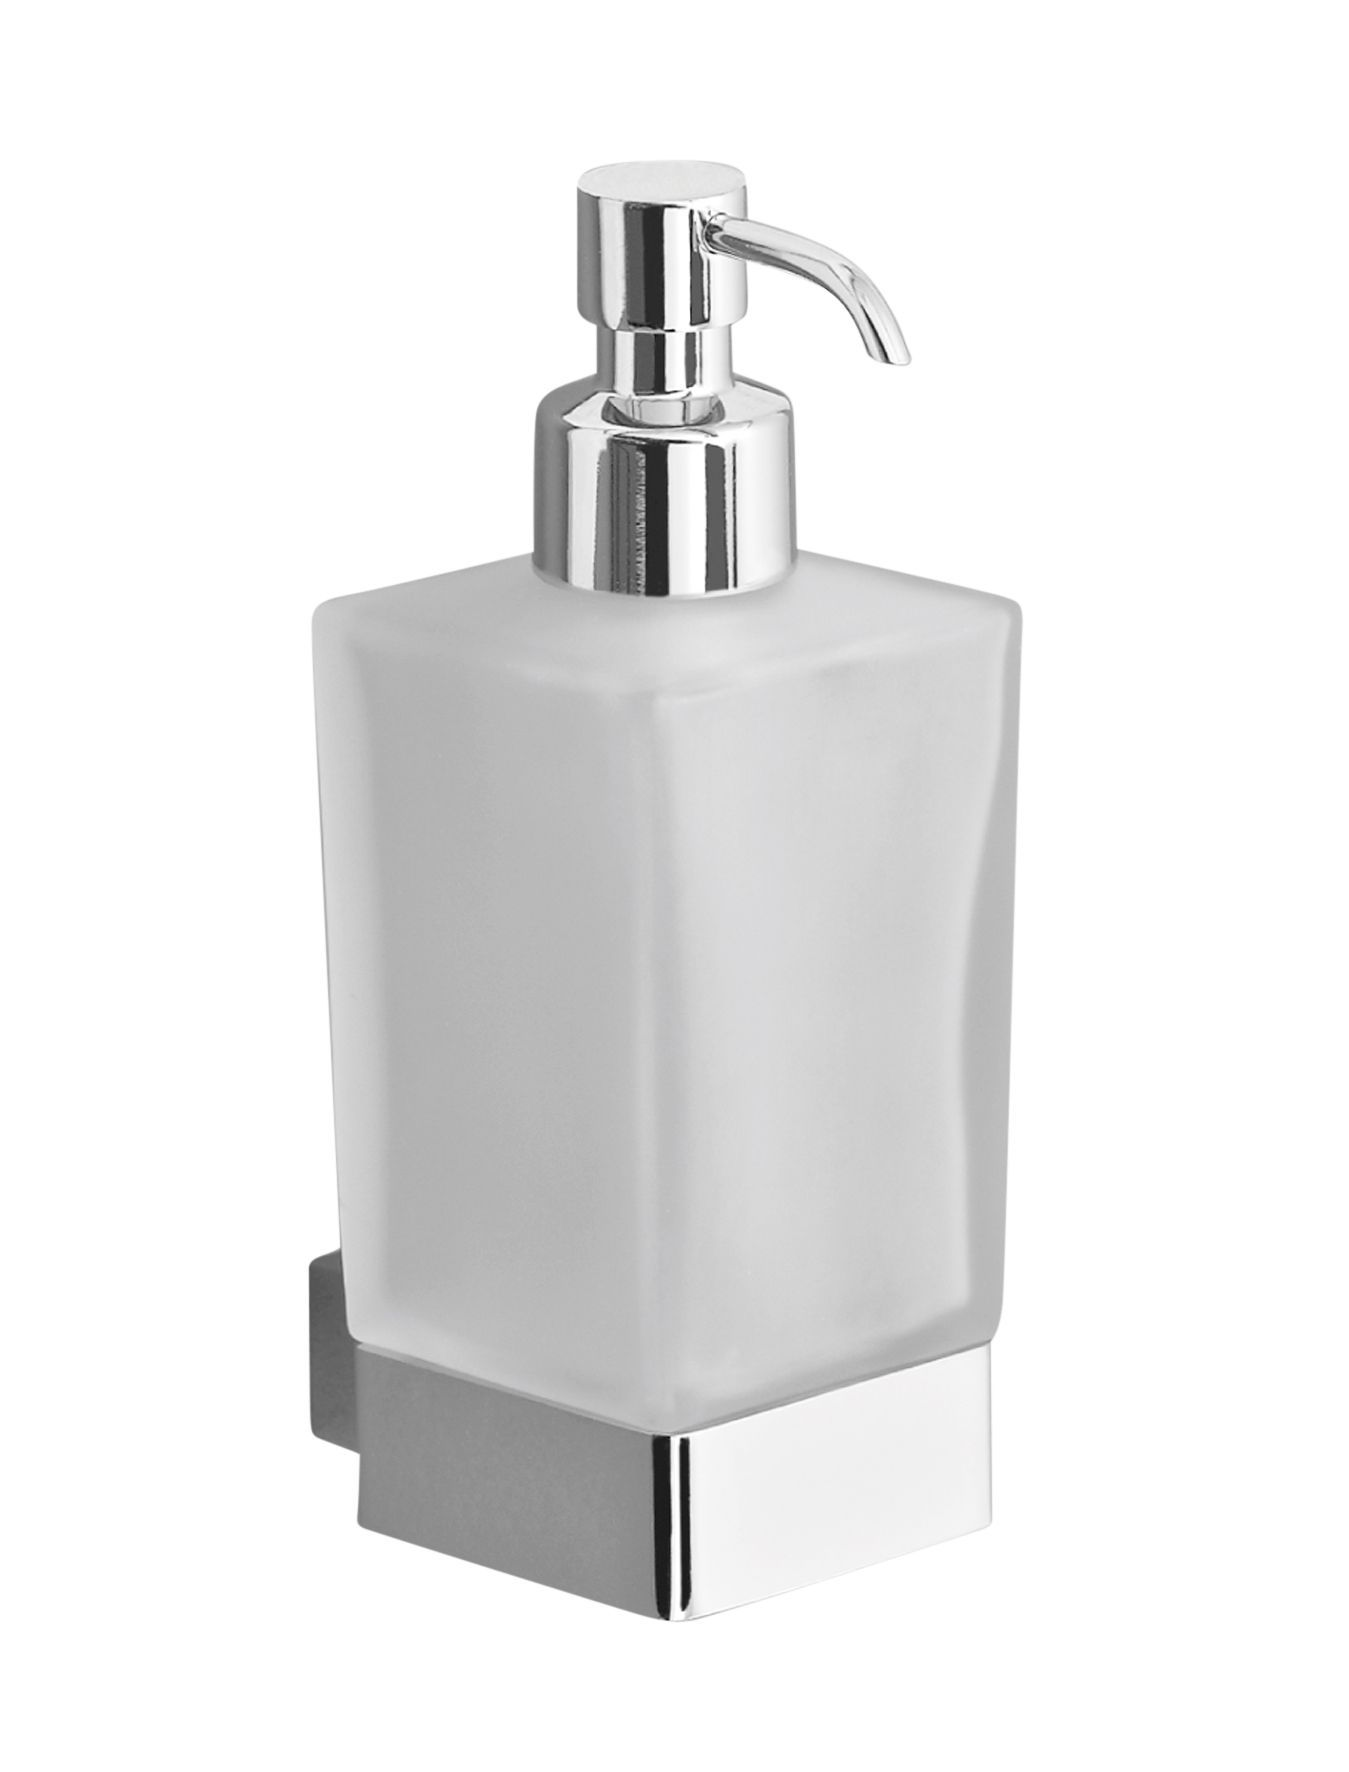 Cooke & Lewis Streamline Chrome Effect Wall Mounted Soap Dispenser